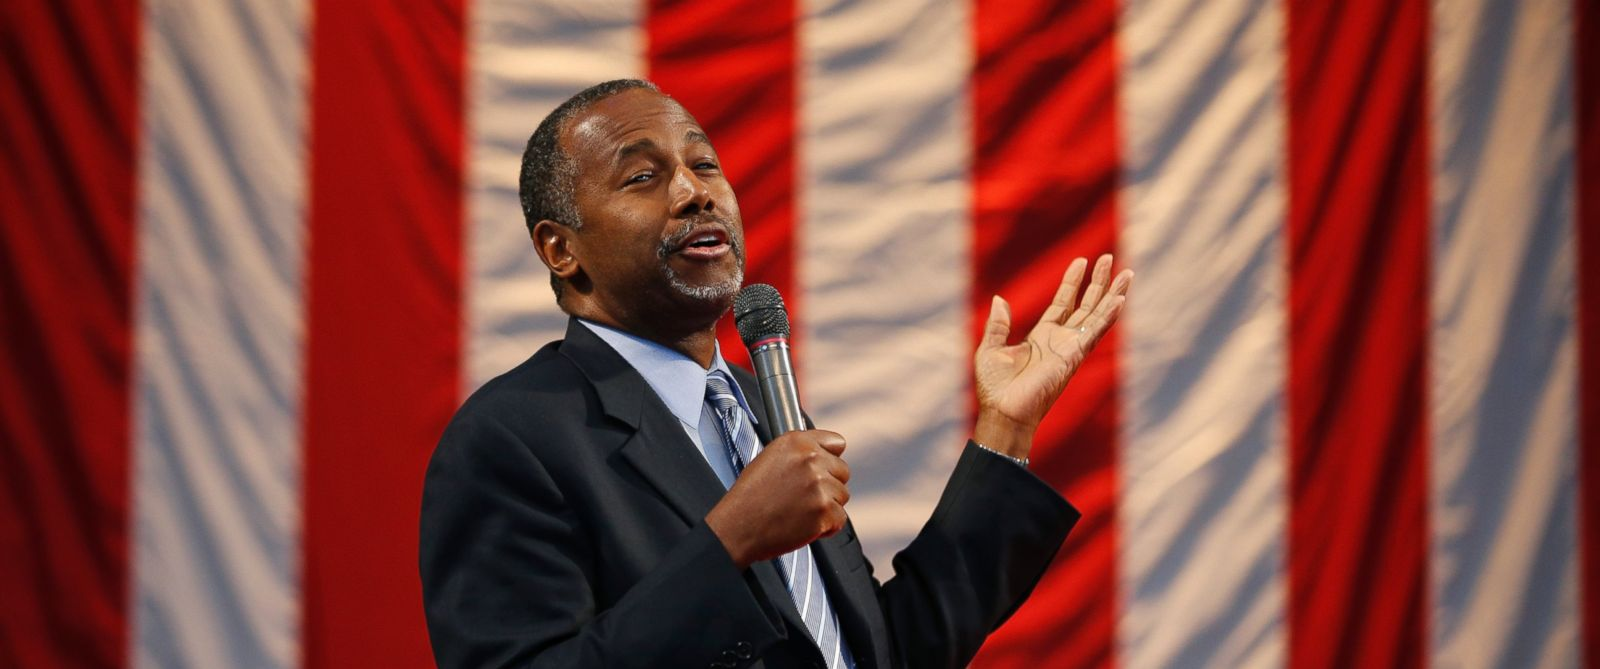 PHOTO: Republican presidential candidate Ben Carson speaks at a rally on Nov. 15, 2015, in Henderson, Nev.